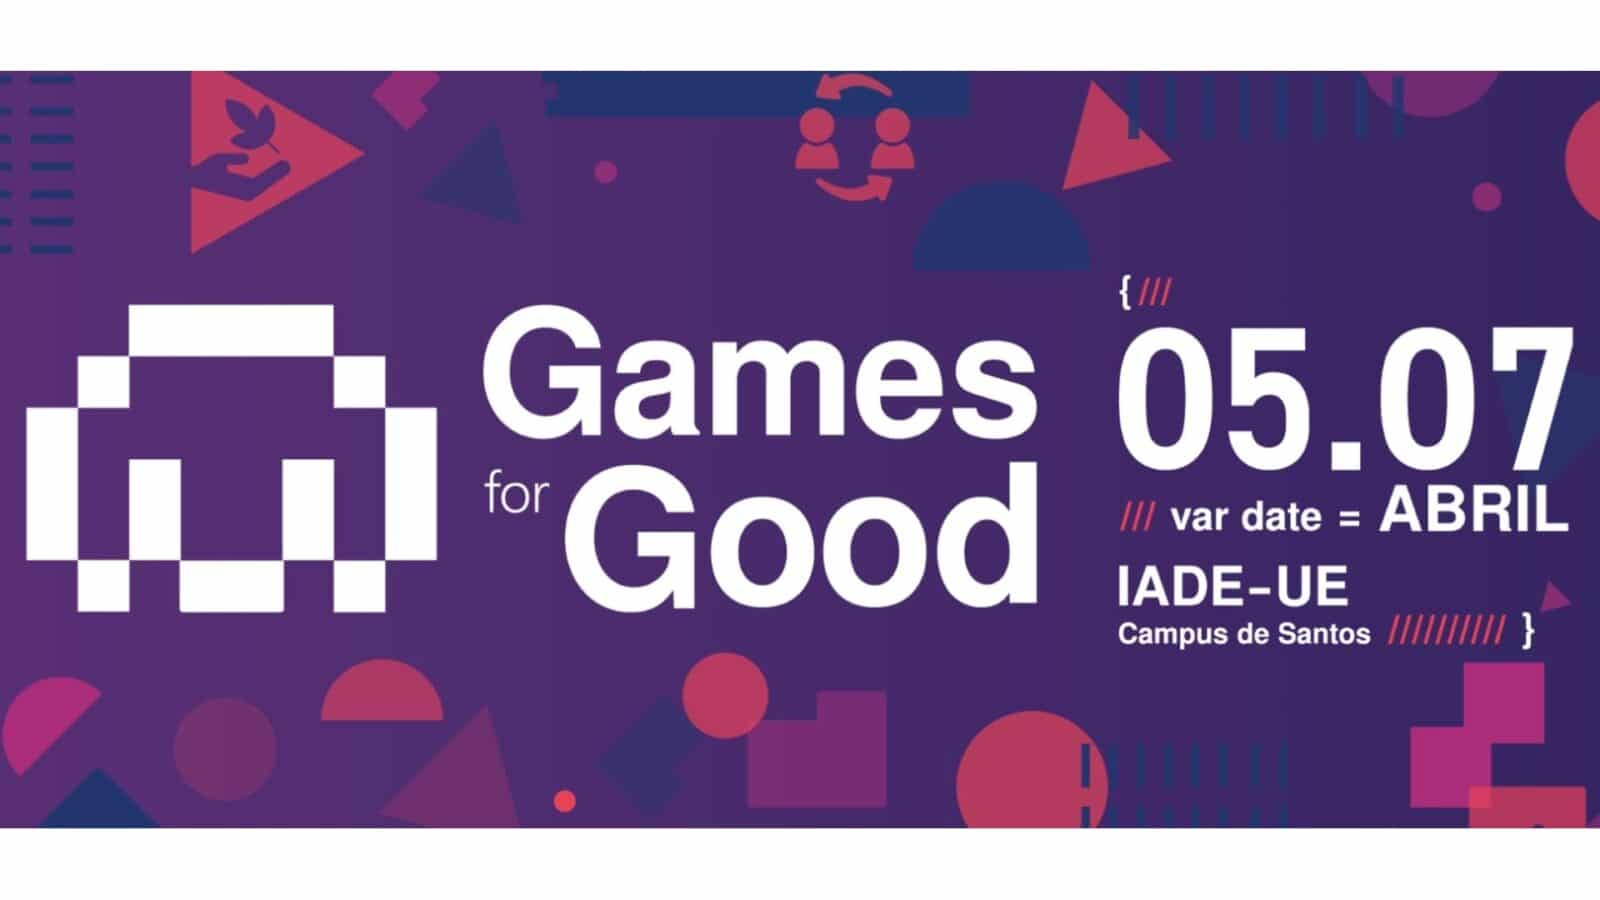 IADE Games for Good New